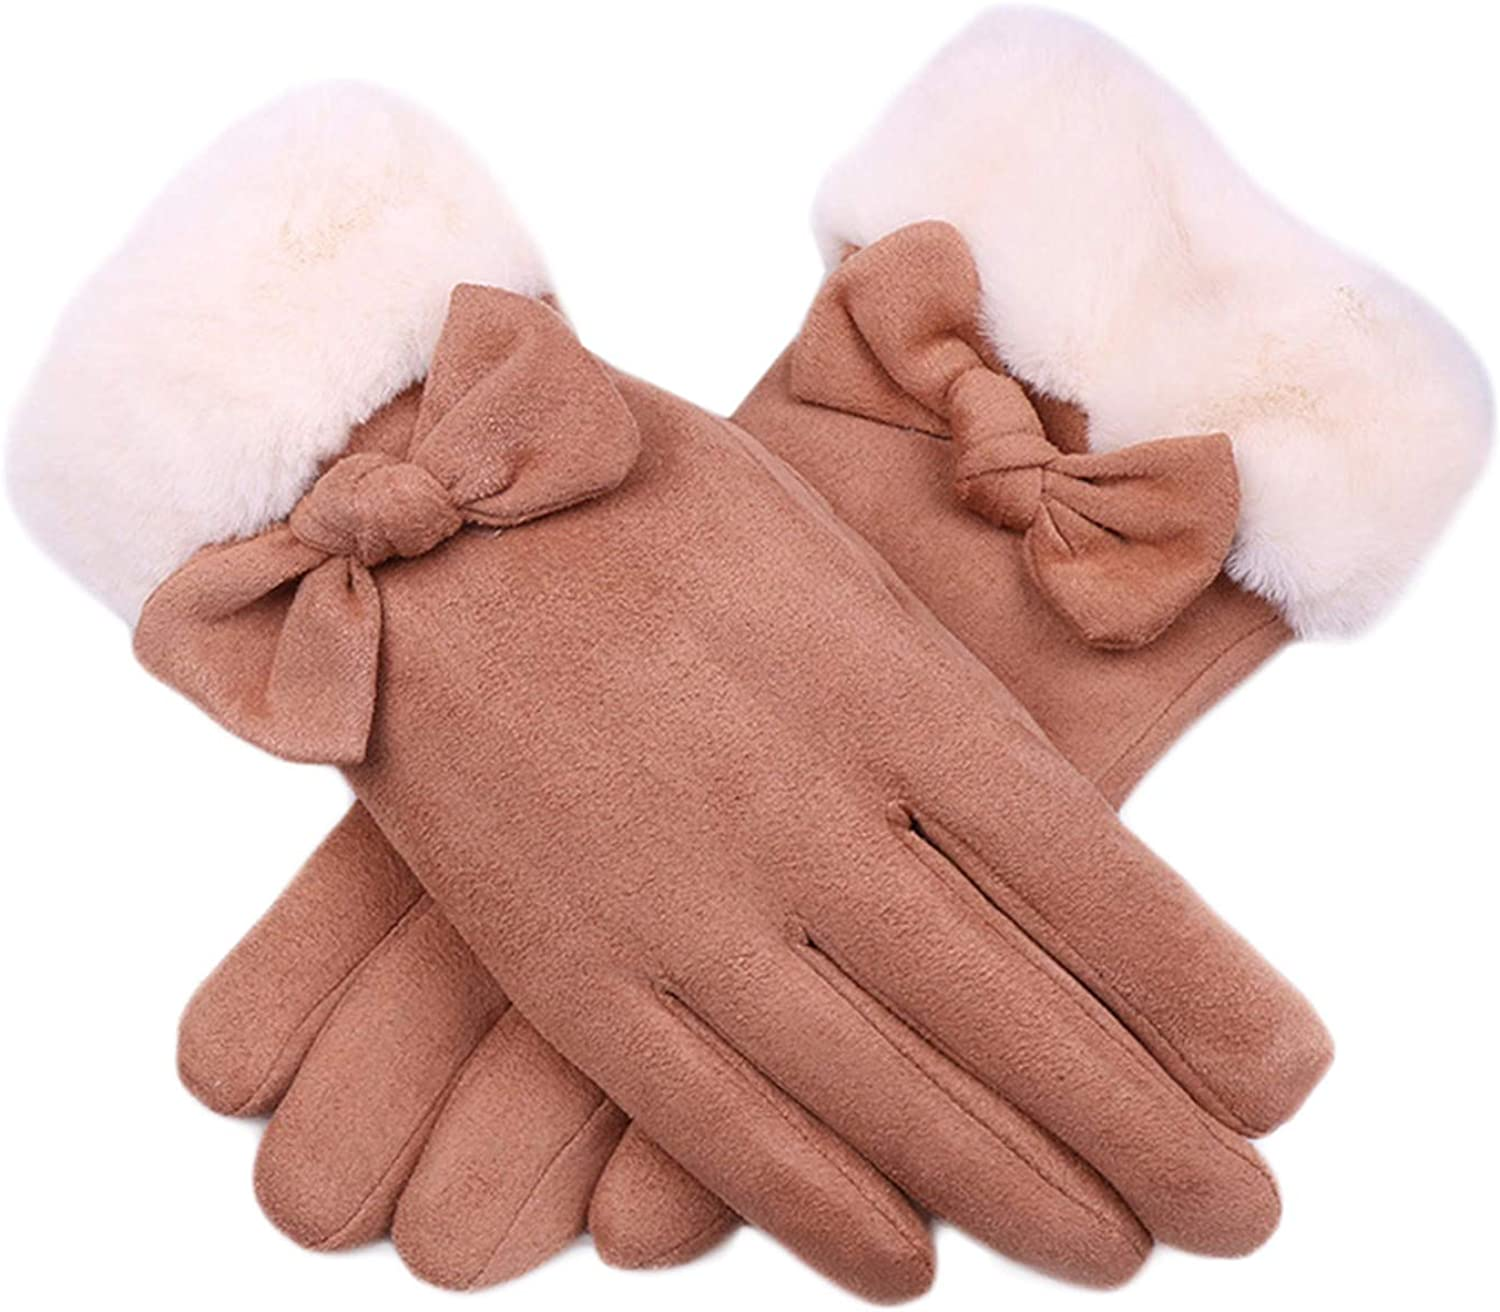 Women Winter Suede Gloves Cold Weather Gloves Soft Warm Plush Lined Touchscreen Gloves Fleece Thermal Gloves